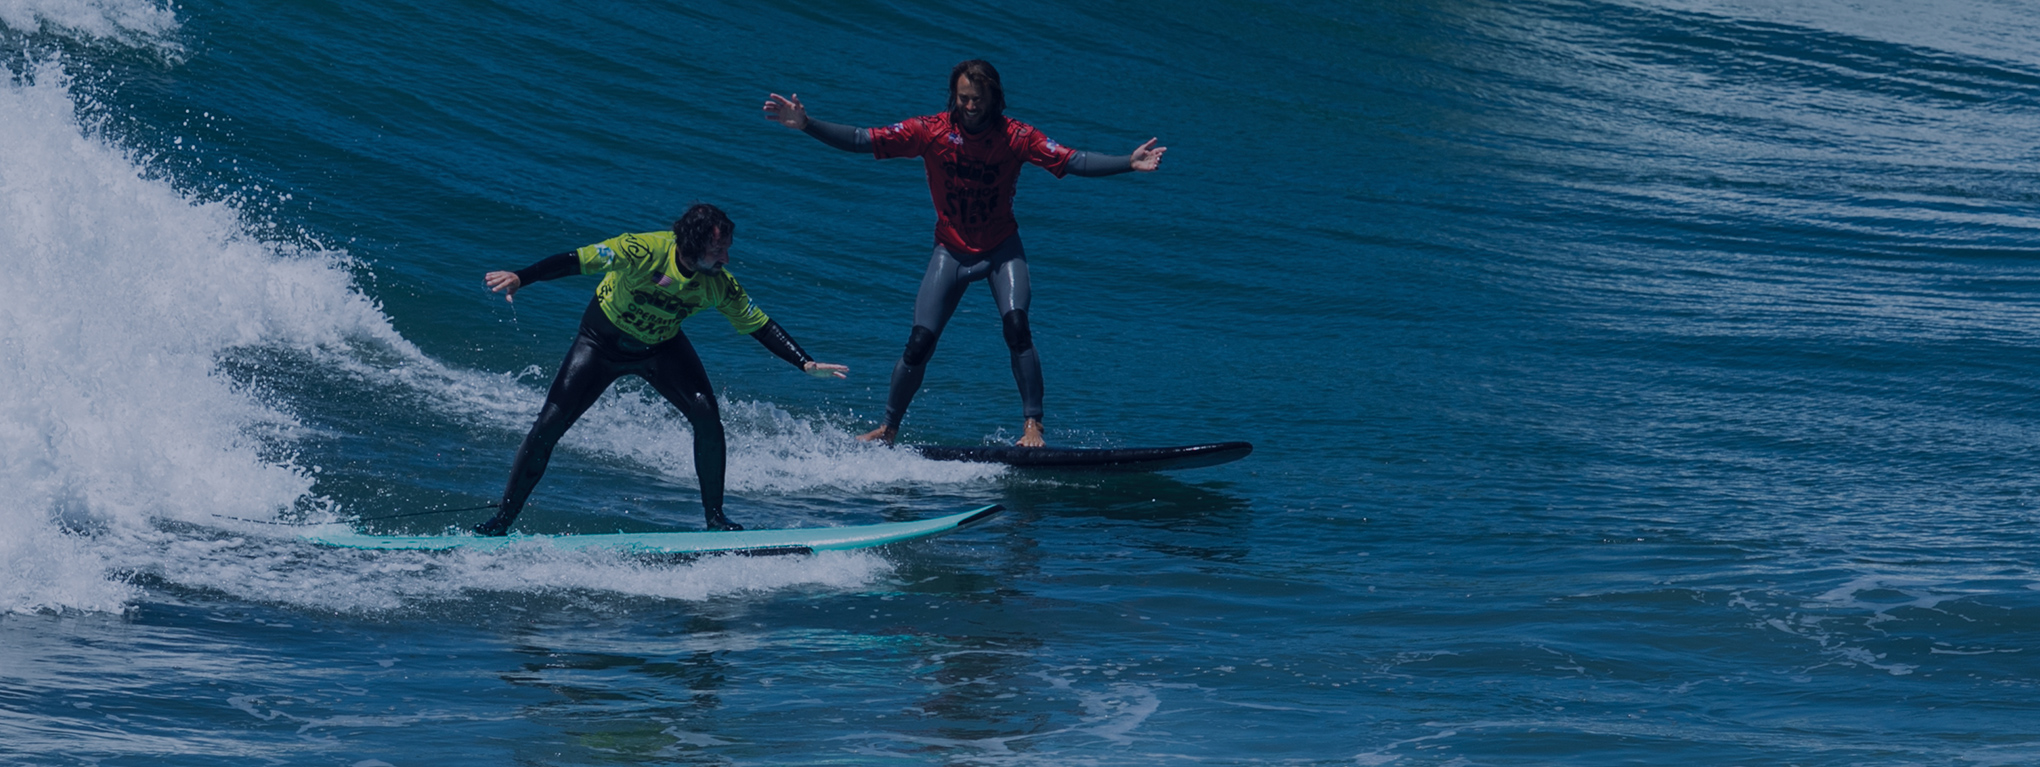 Two Operation Surf participants ride a wave